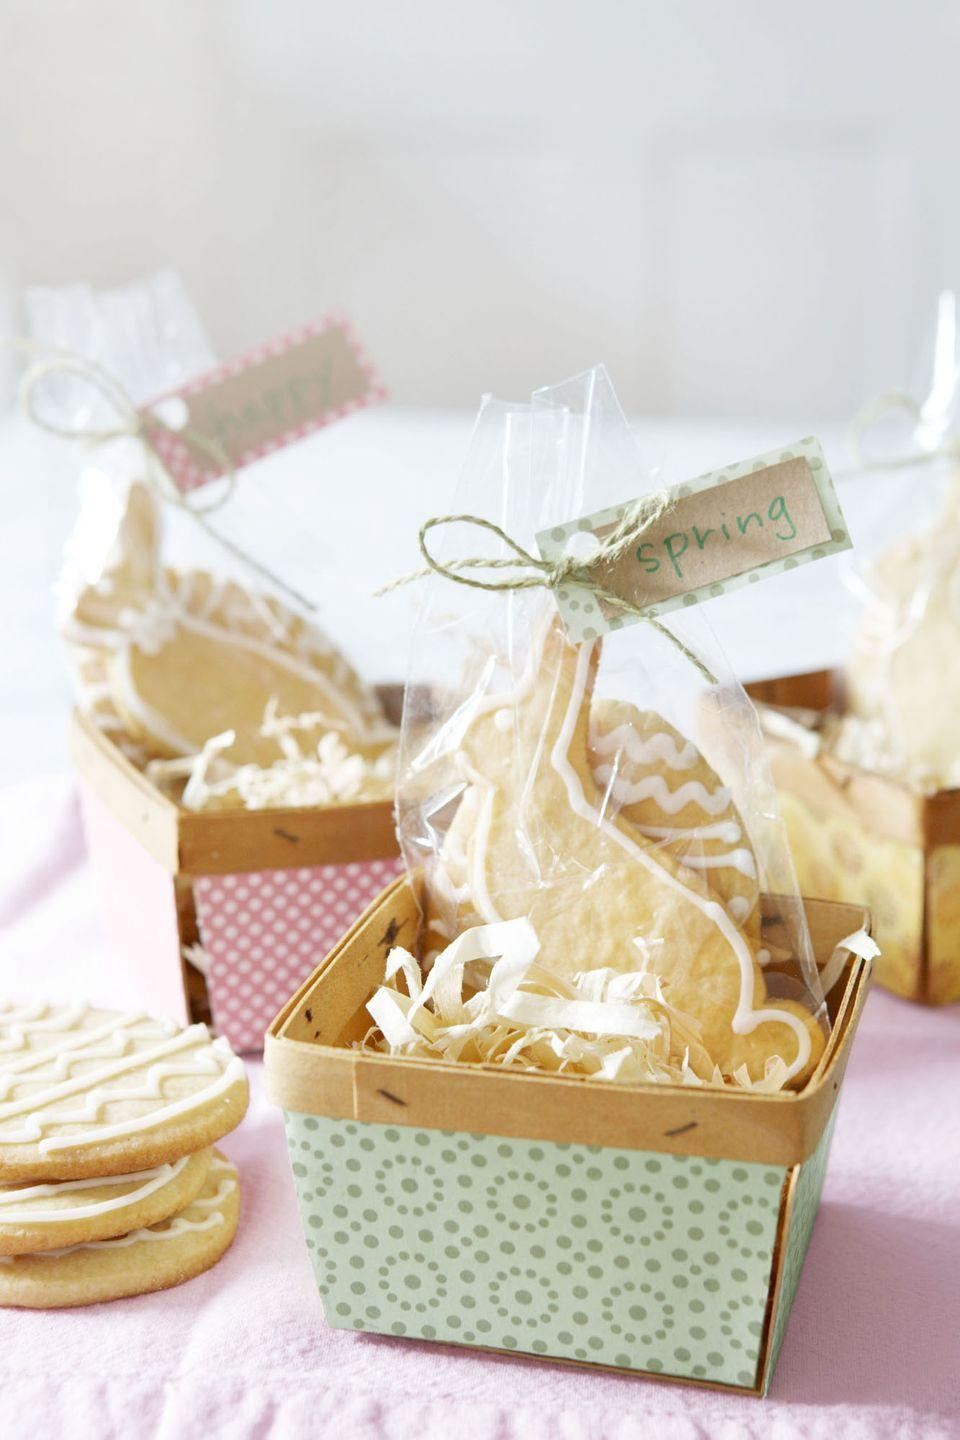 <p>Give guests a sweet send-off with cookies in craft-store berry baskets. Tape patterned scrapbook paper to baskets, and use the same paper for hangtags attached with twine. </p>